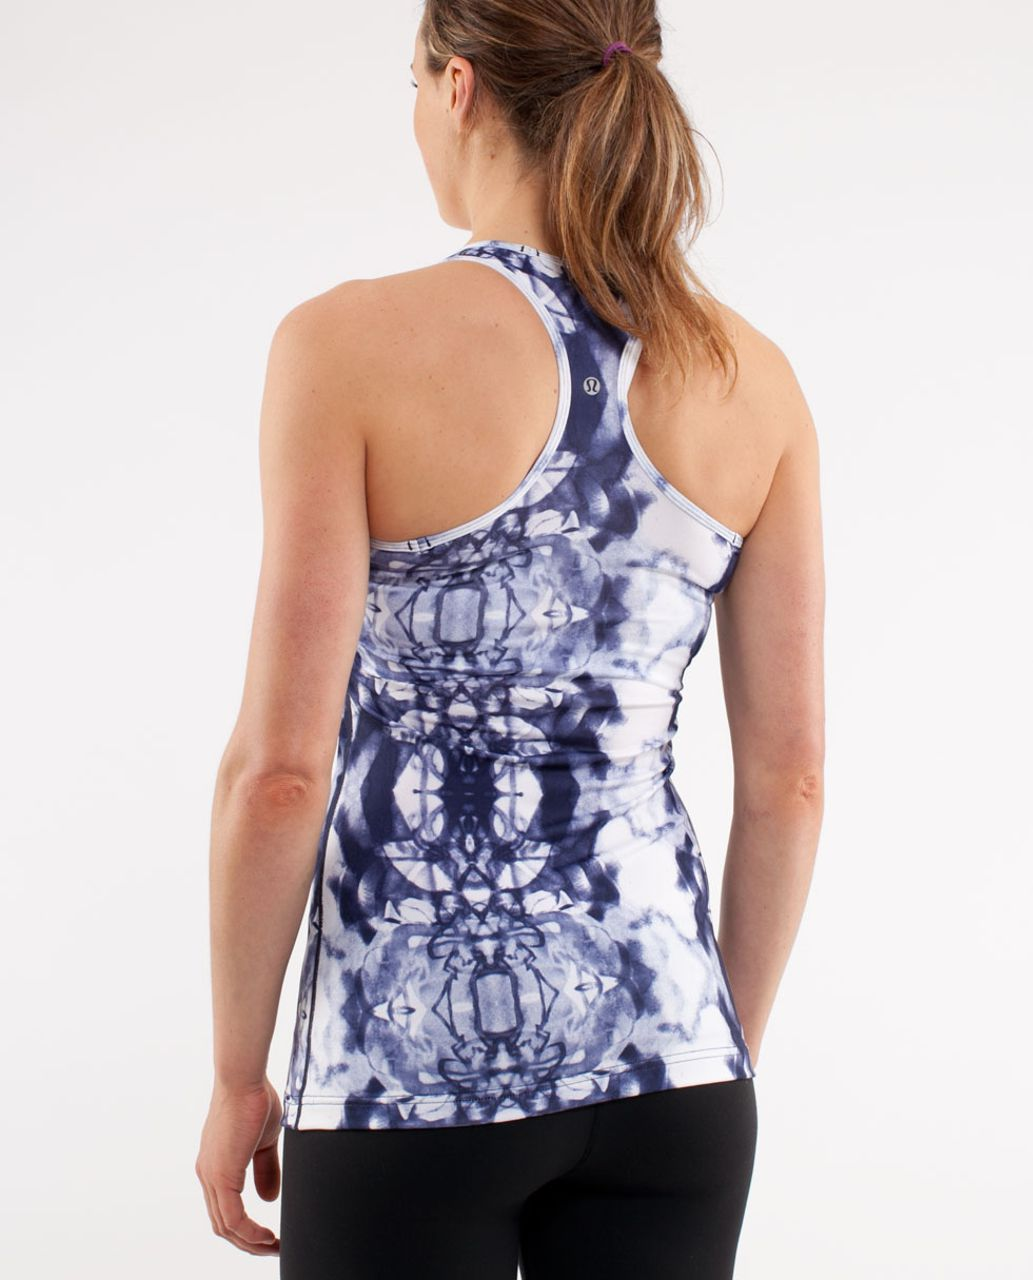 Lululemon Cool Racerback - Ink Blot White Deep Indigo